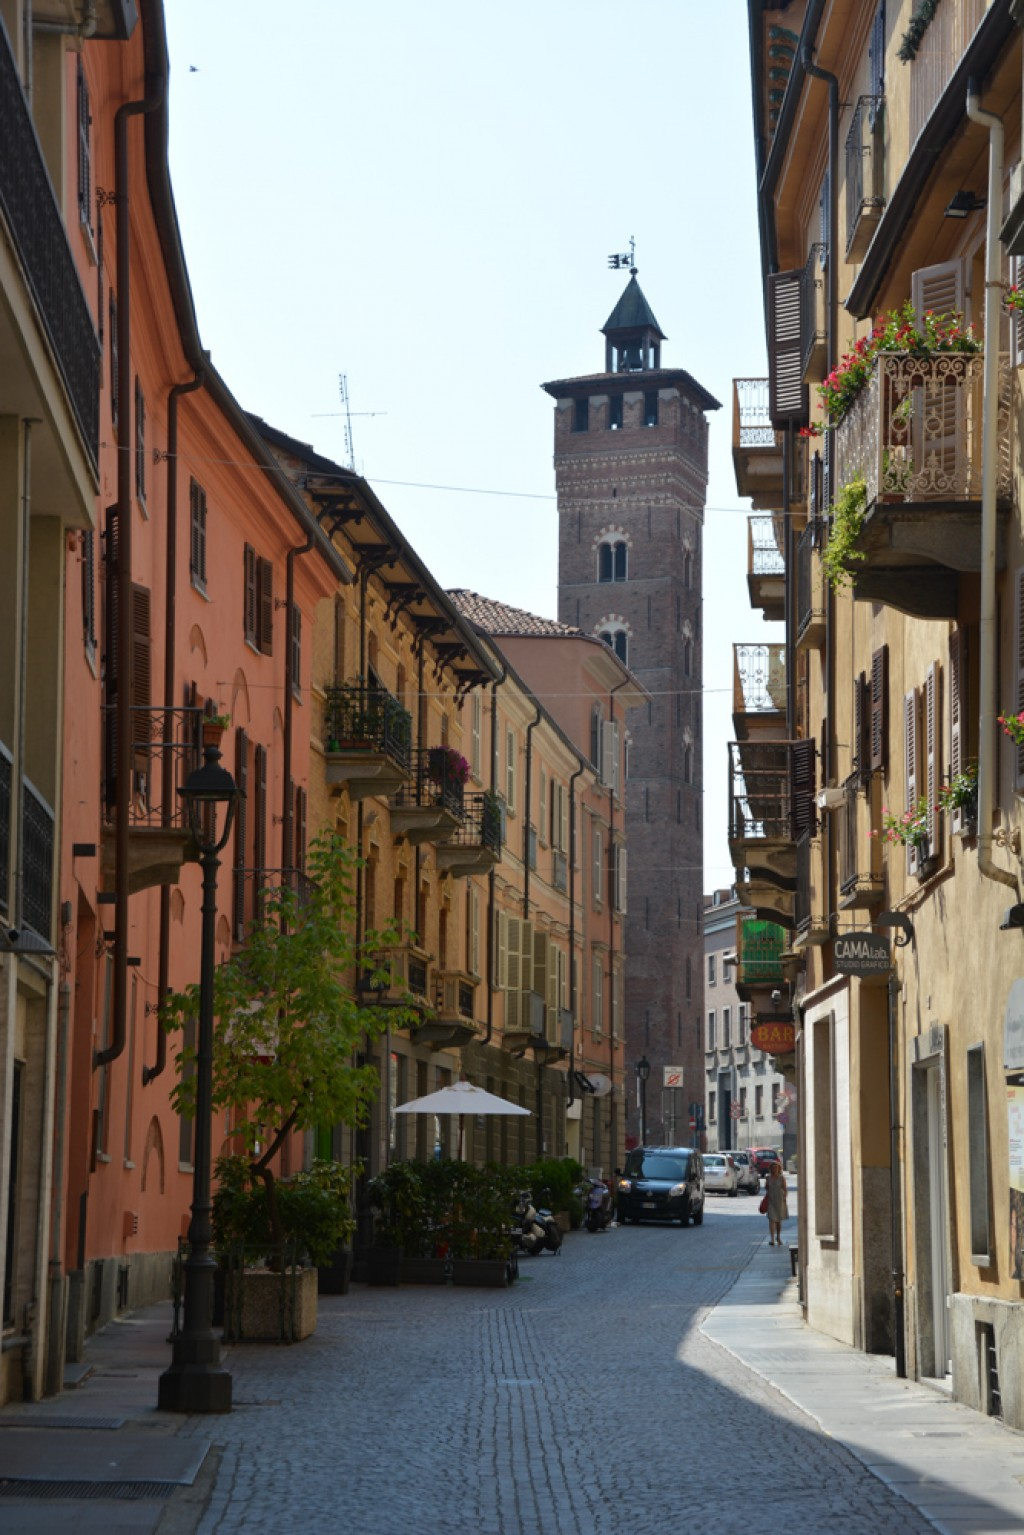 Exploring the streets of Asti